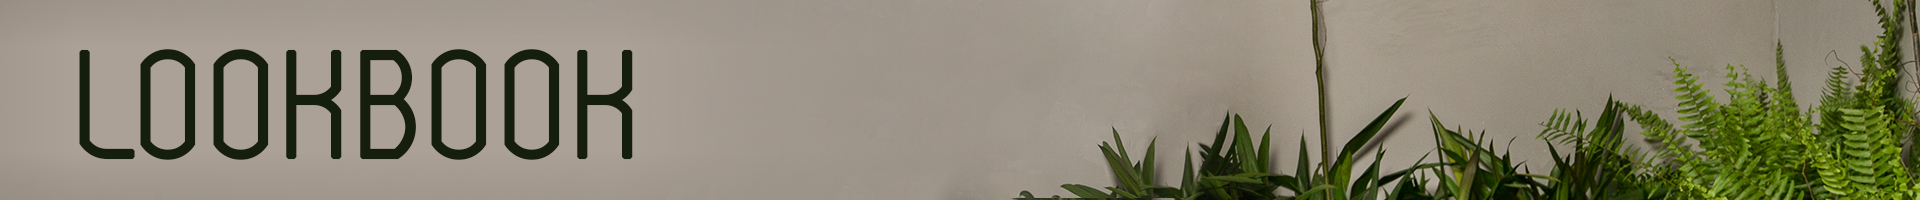 banner-lookbook